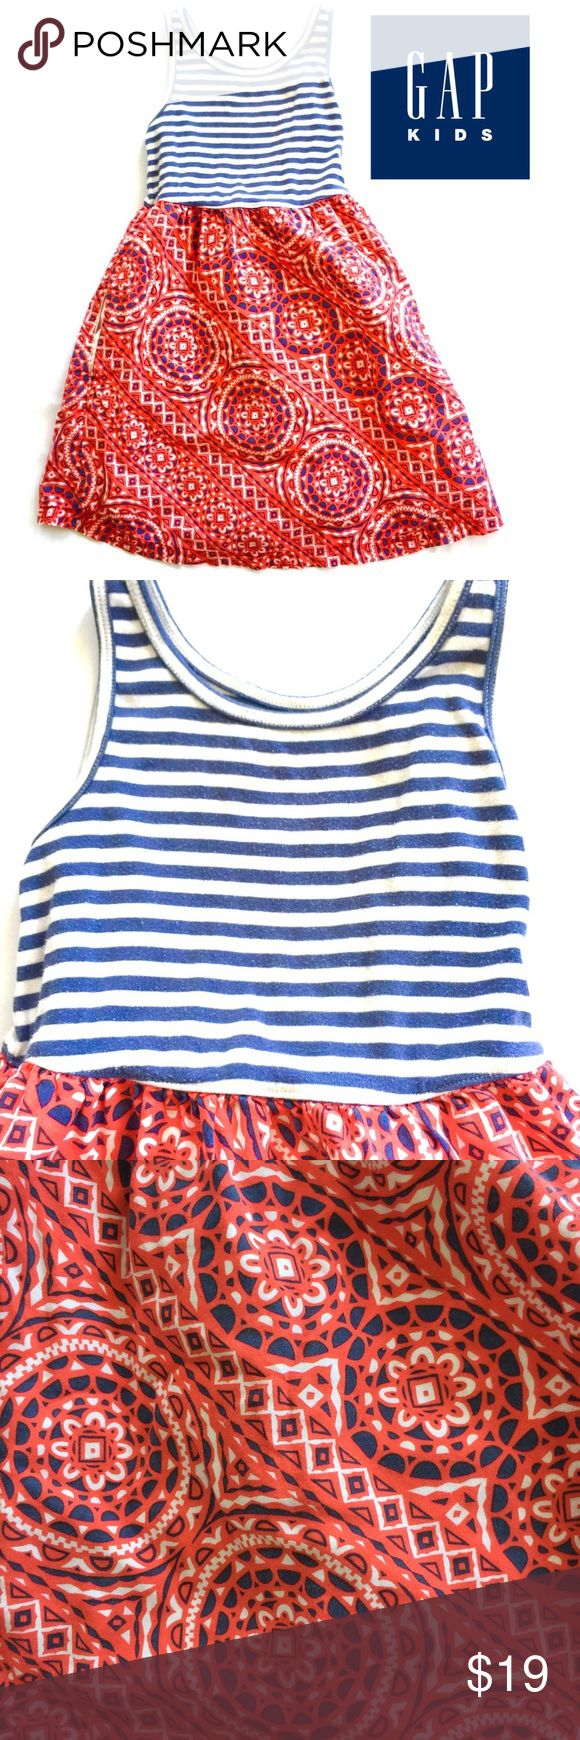 Gap Kids Vintage Style Patriotic Dress in S This Authentic Gap Kids Vintage Style Patriotic Dress in Girls Size Small (6-7) is adorable and faded everywhere.  This dress is straight up vintage and looks great with a denim jacket.  Cotton spandex tank and 100% cotton skirt.  There is a small Pilling on the tank which adds to the vintage appeal.  your daughter will jam out this Fourth of July with a 1776 look! GAP Dresses Casual